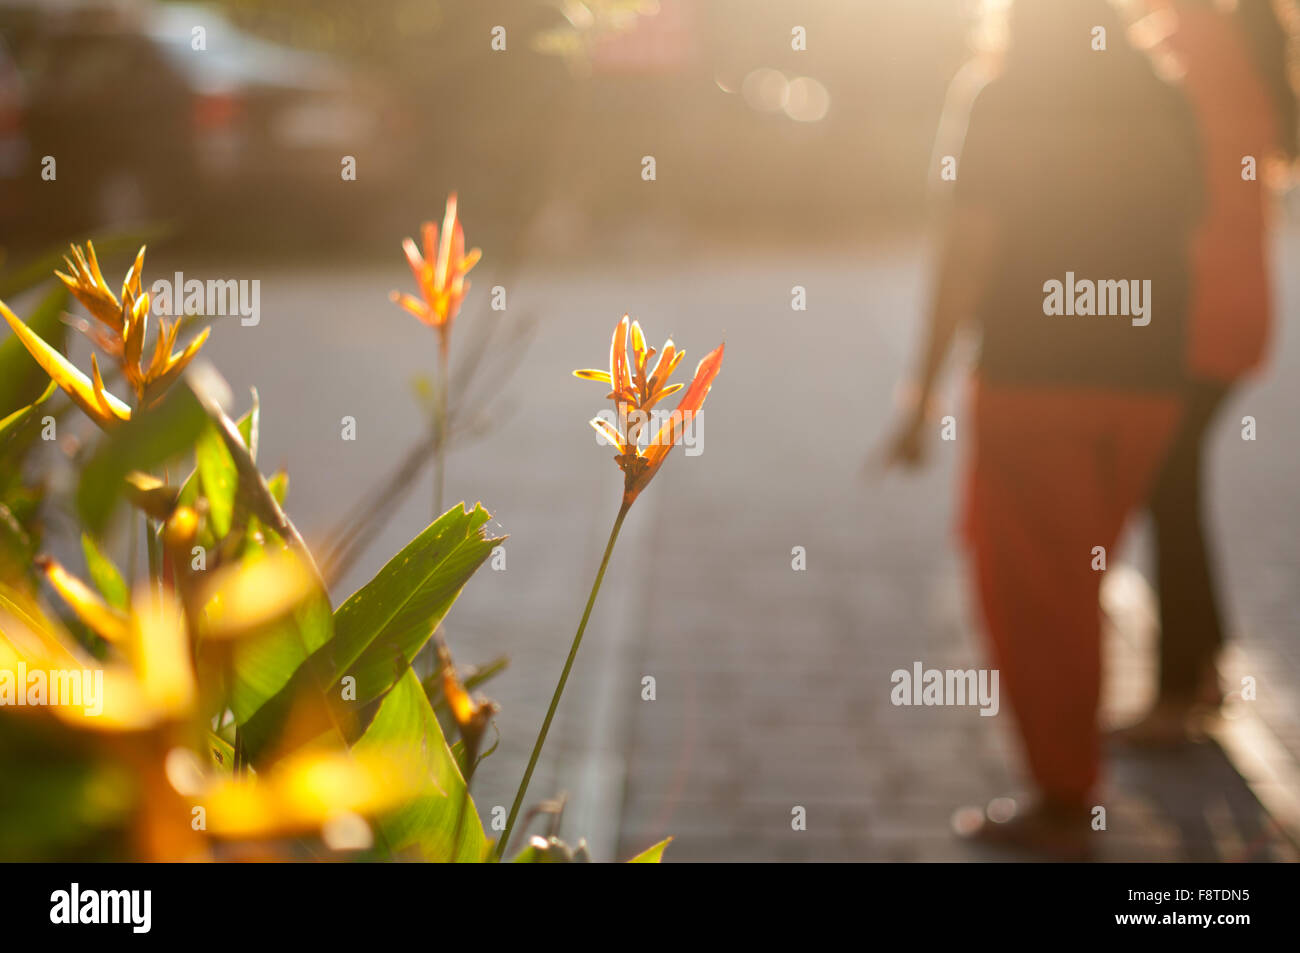 Heliconia flowers in a park with people blurred in background against setting sun - Stock Image